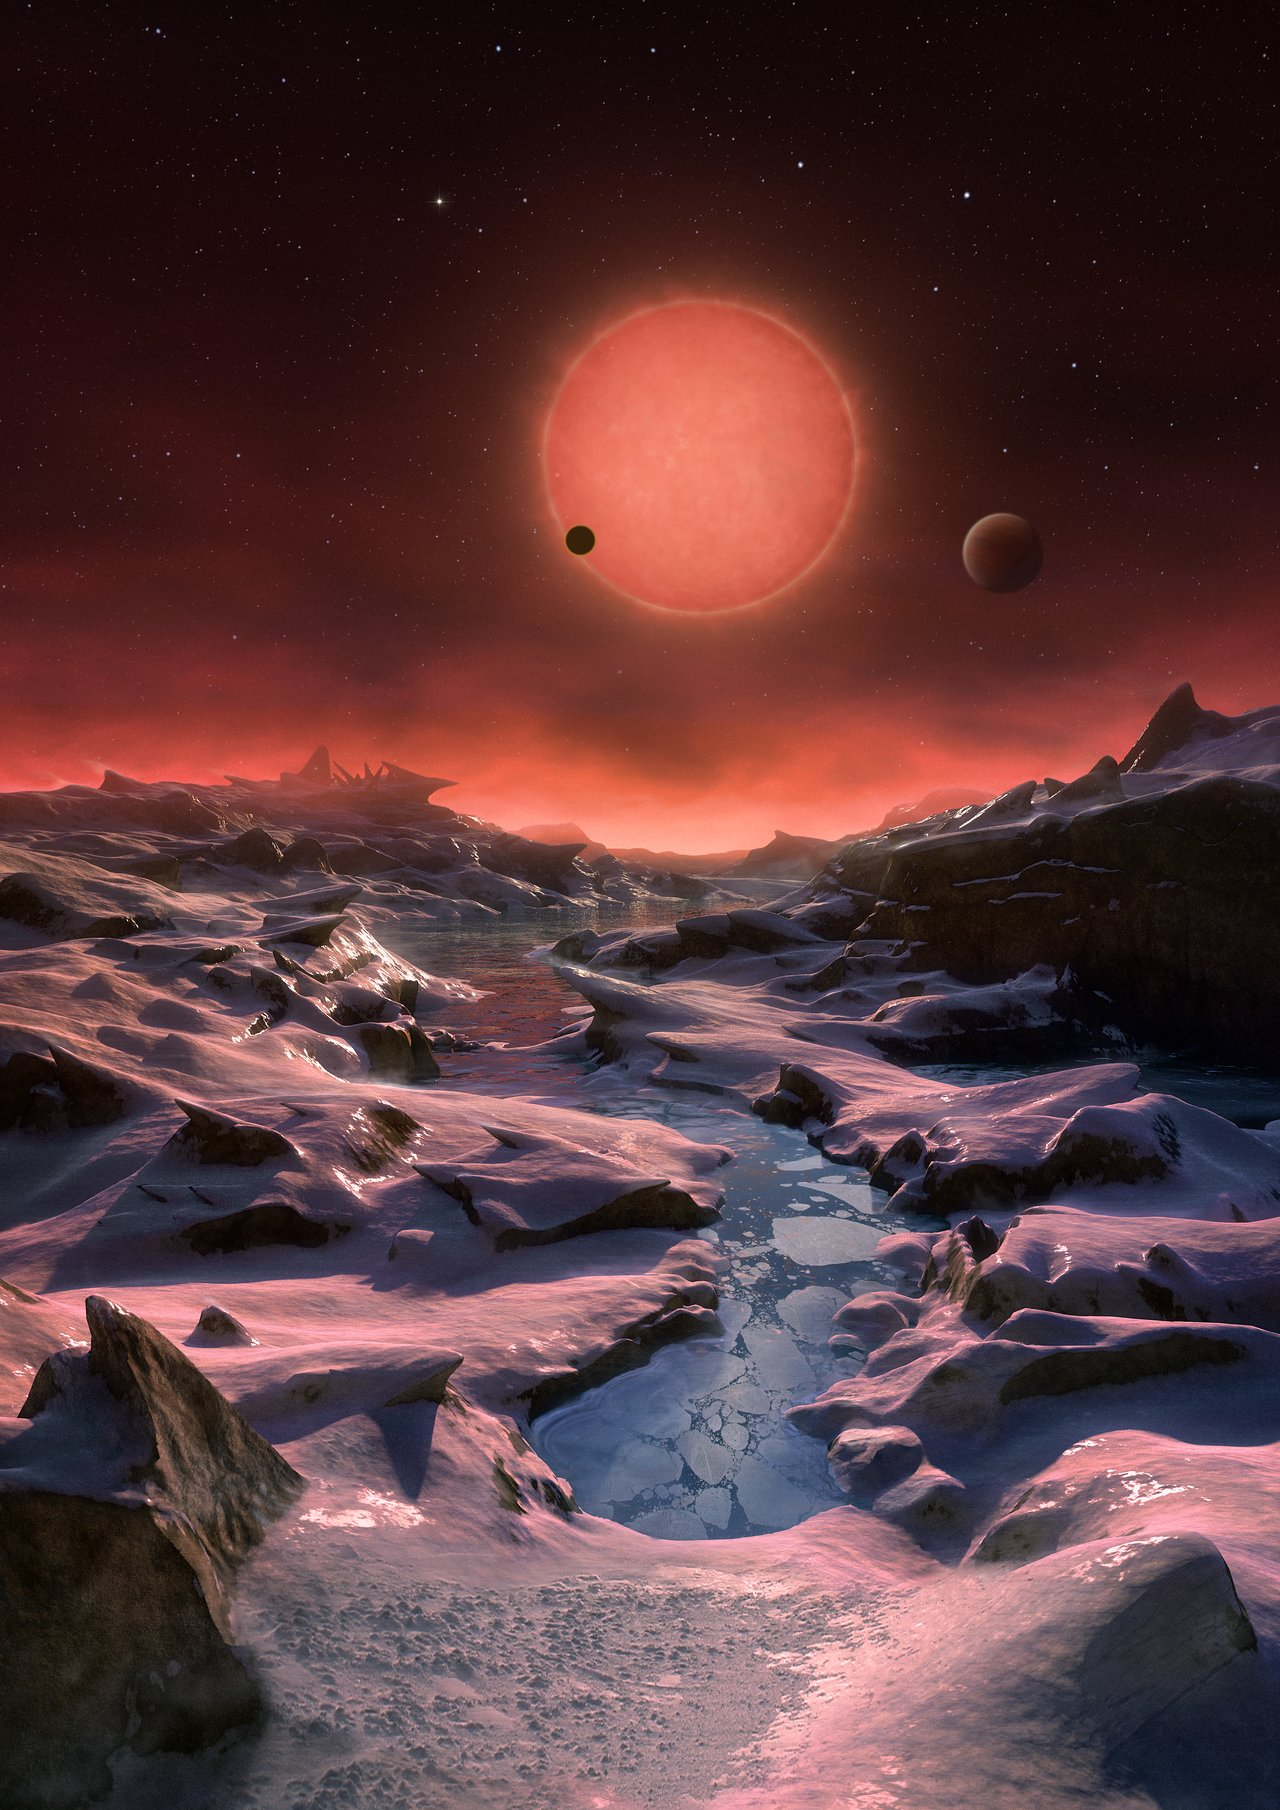 Artist's impression of the ultracool dwarf star TRAPPIST-1 from the surface of one of its planets - Image Credit:  ESO/M. Kornmesser